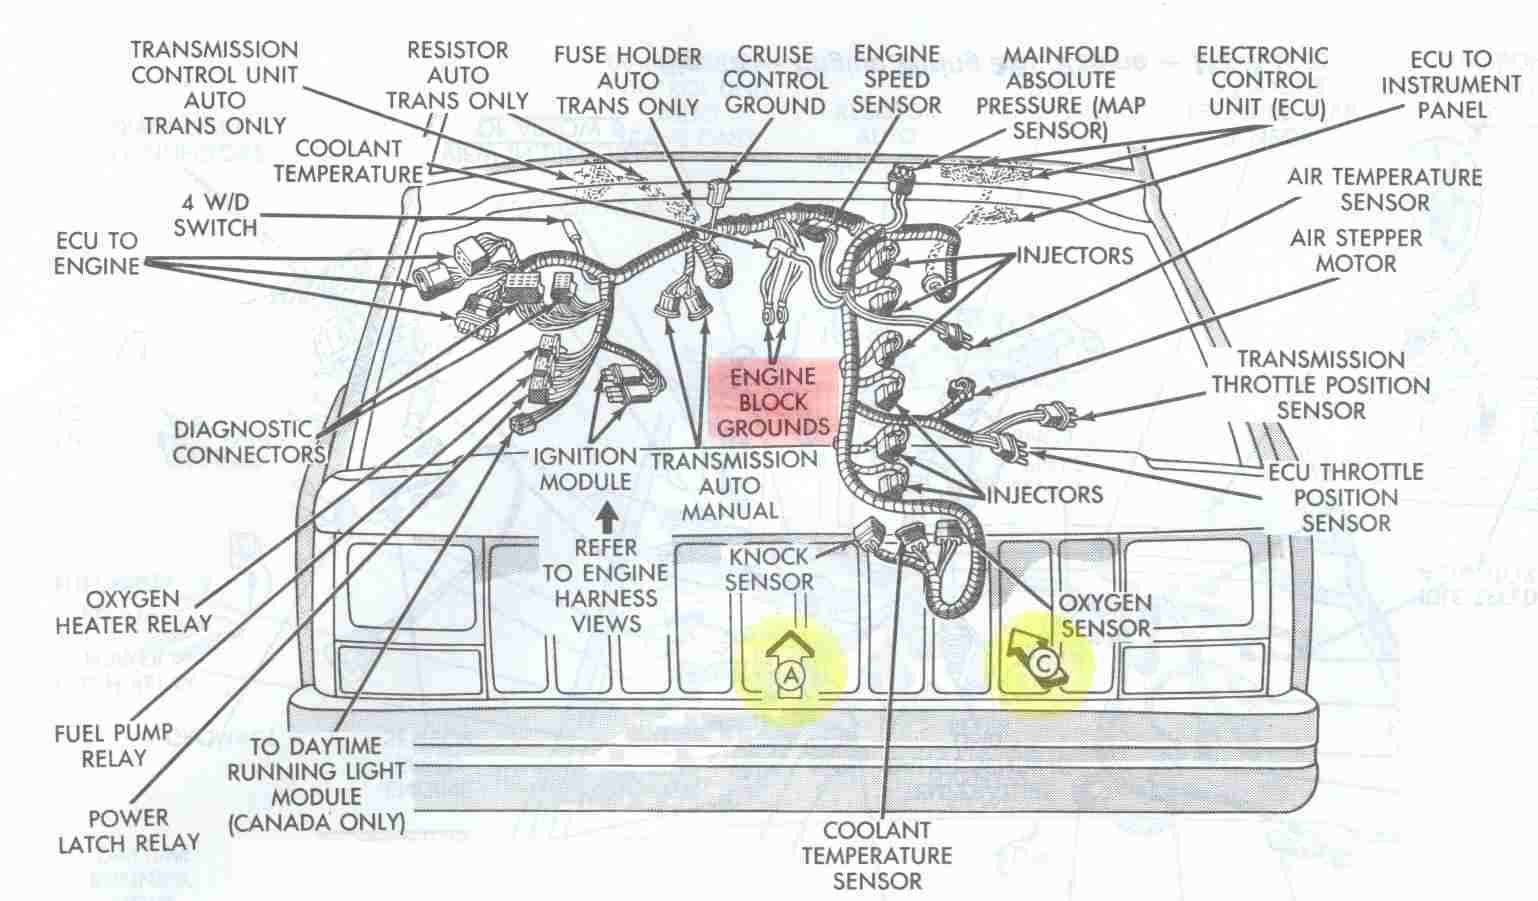 1985 Jeep Grand Wagoneer Engine Diagram Books Of Wiring Harness Vixion Bay Schematic Showing Major Electrical Ground Points For 4 0l Rh Pinterest Com